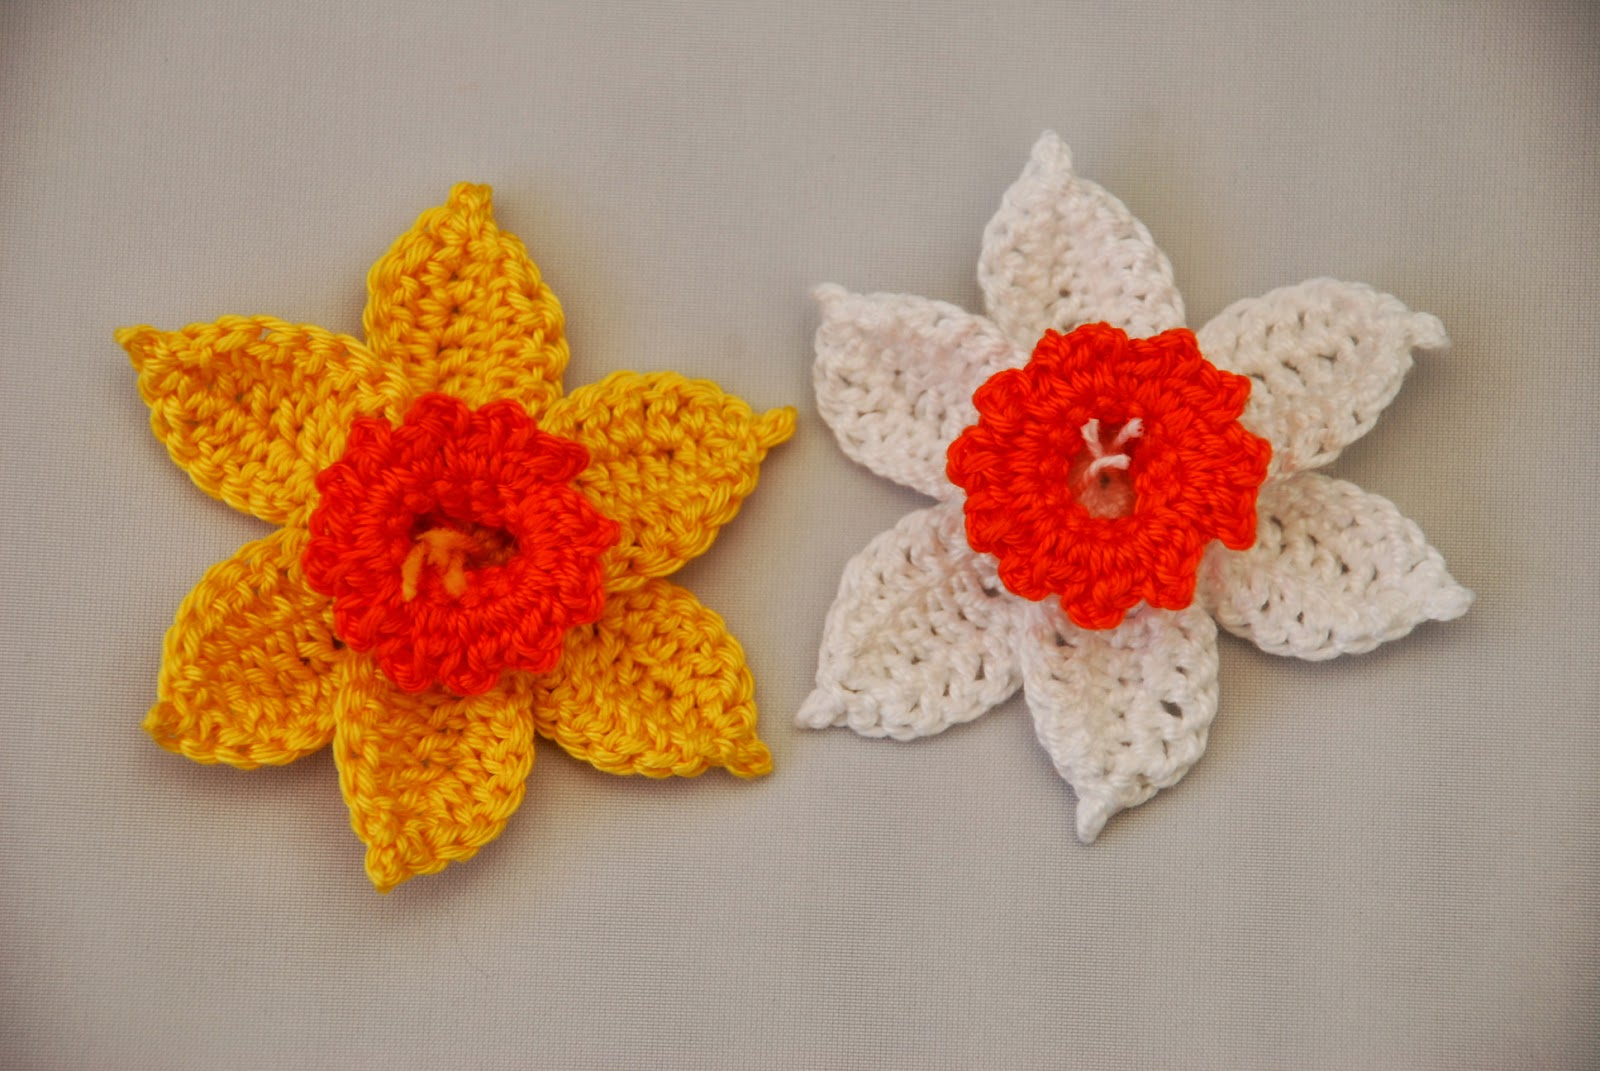 Crochet Daffodil pattern and tutorial: image of Amjaylou designed crocheted daffodils